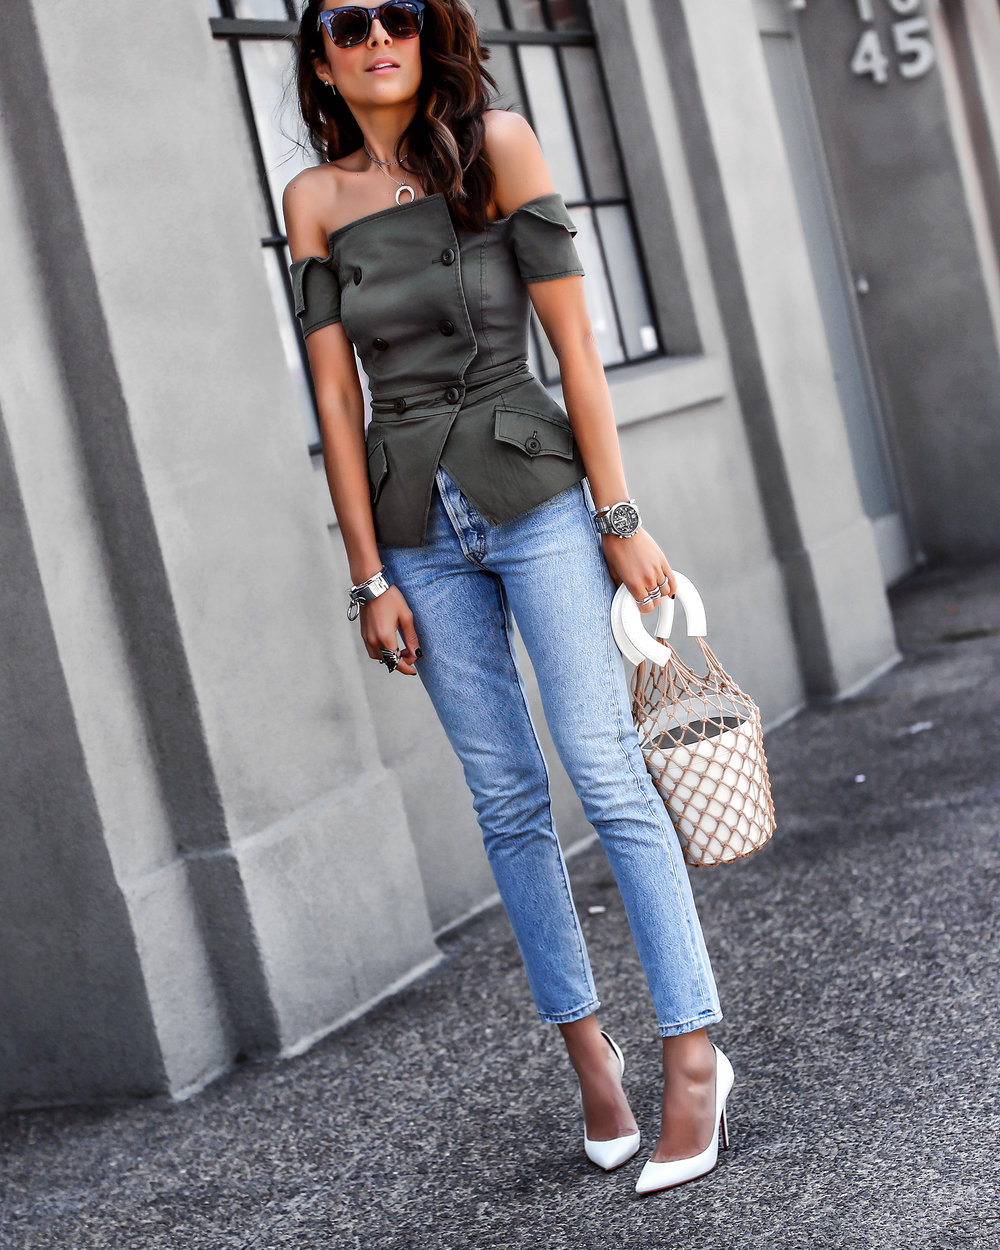 Marissa Webb Vest Levis Jeans Staud Bucket Bag Spring Fashion Must Haves.jpg